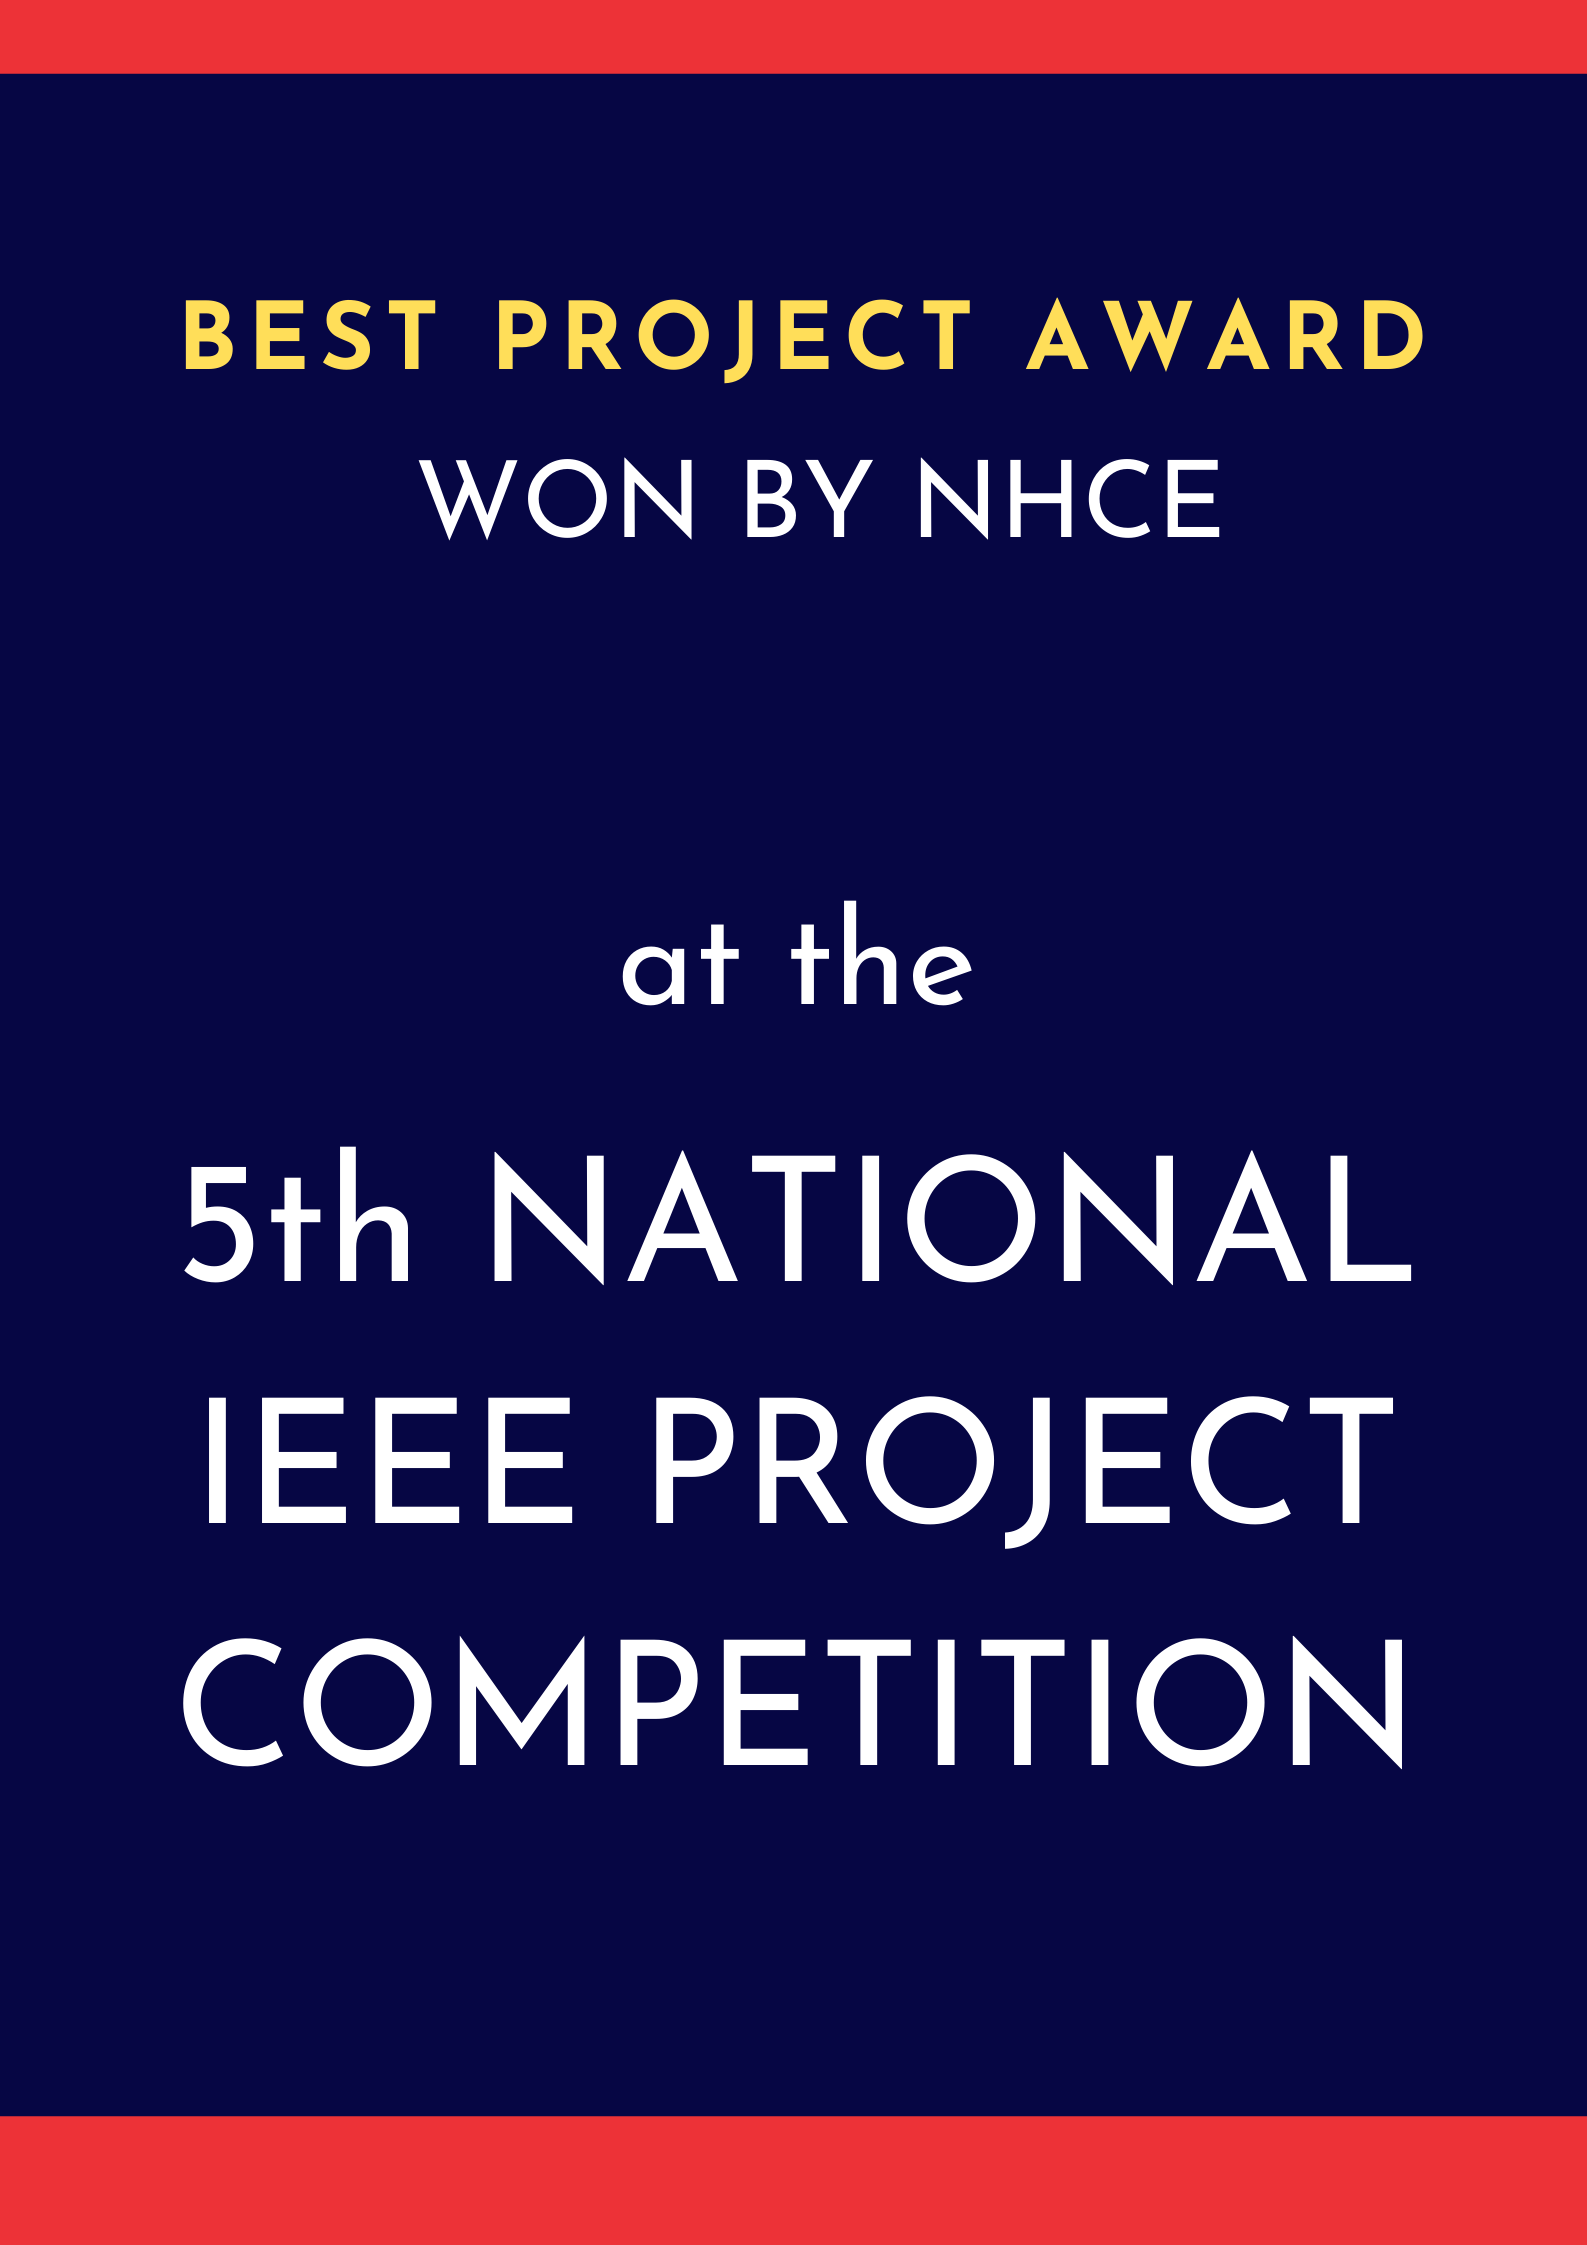 Best Project Award at the 5th National IEEE Project Competition